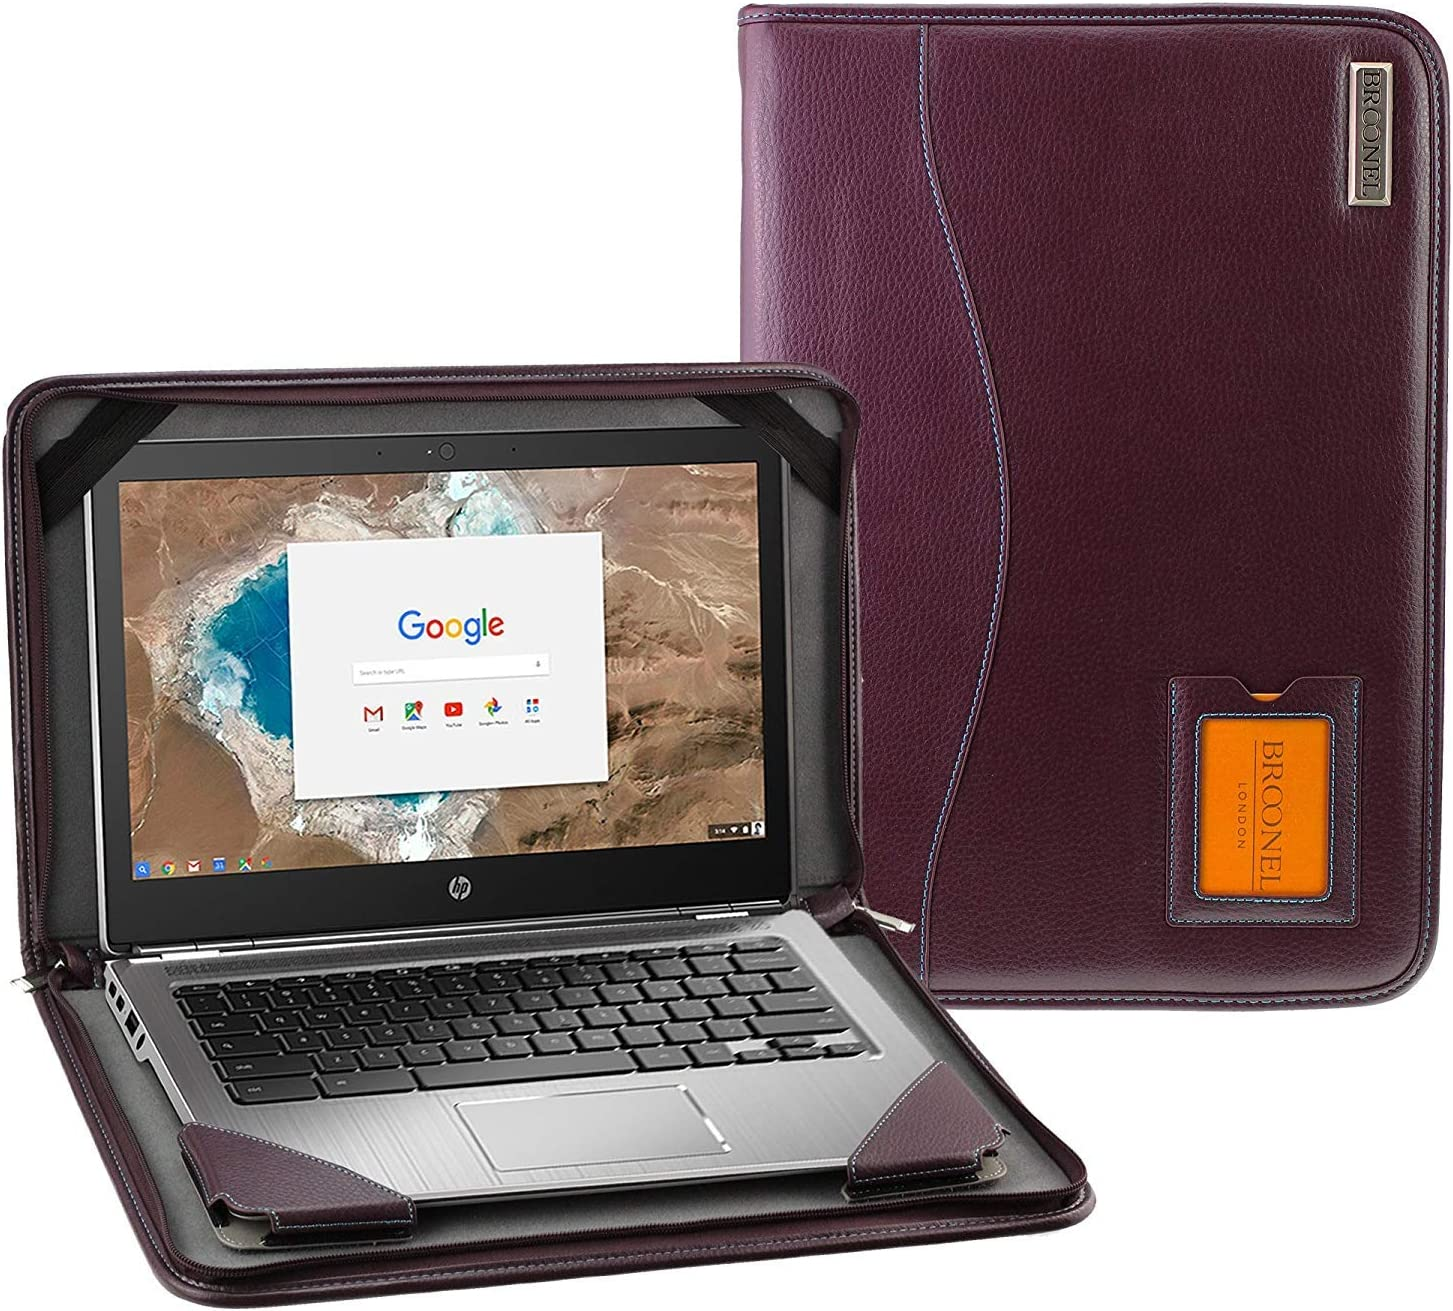 Broonel - Contour Series - Purple Heavy Duty Leather Protective Case Compatible with The HP EliteBook x360 1030 G4 13.3